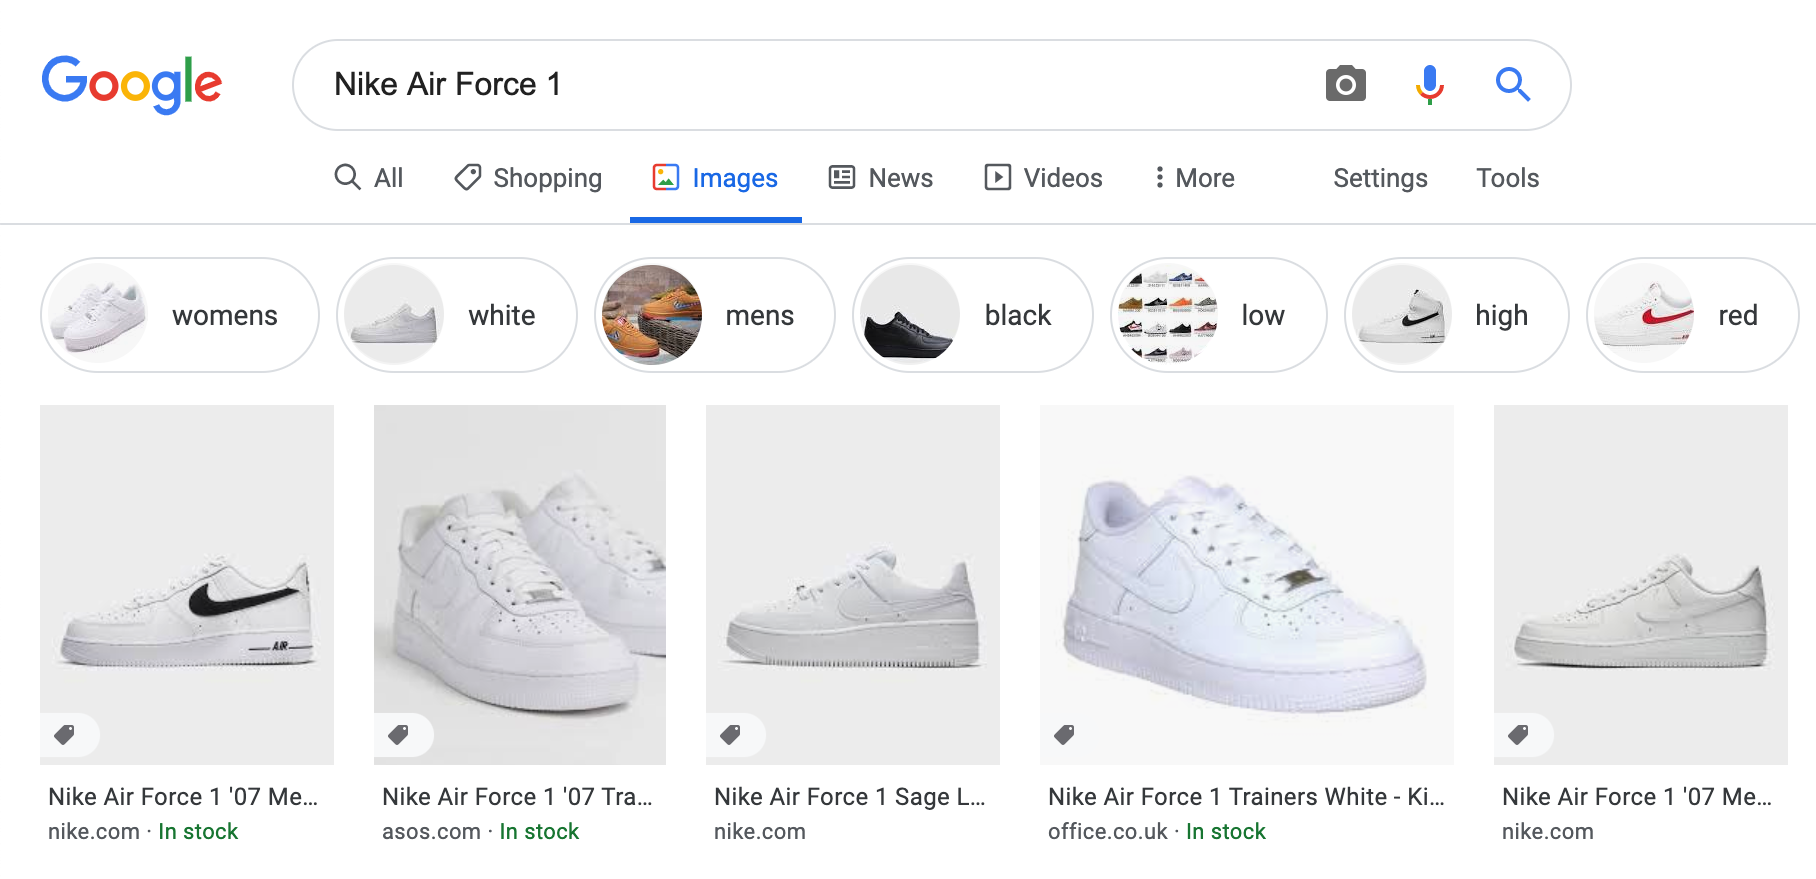 Google Image results with stock structured data.